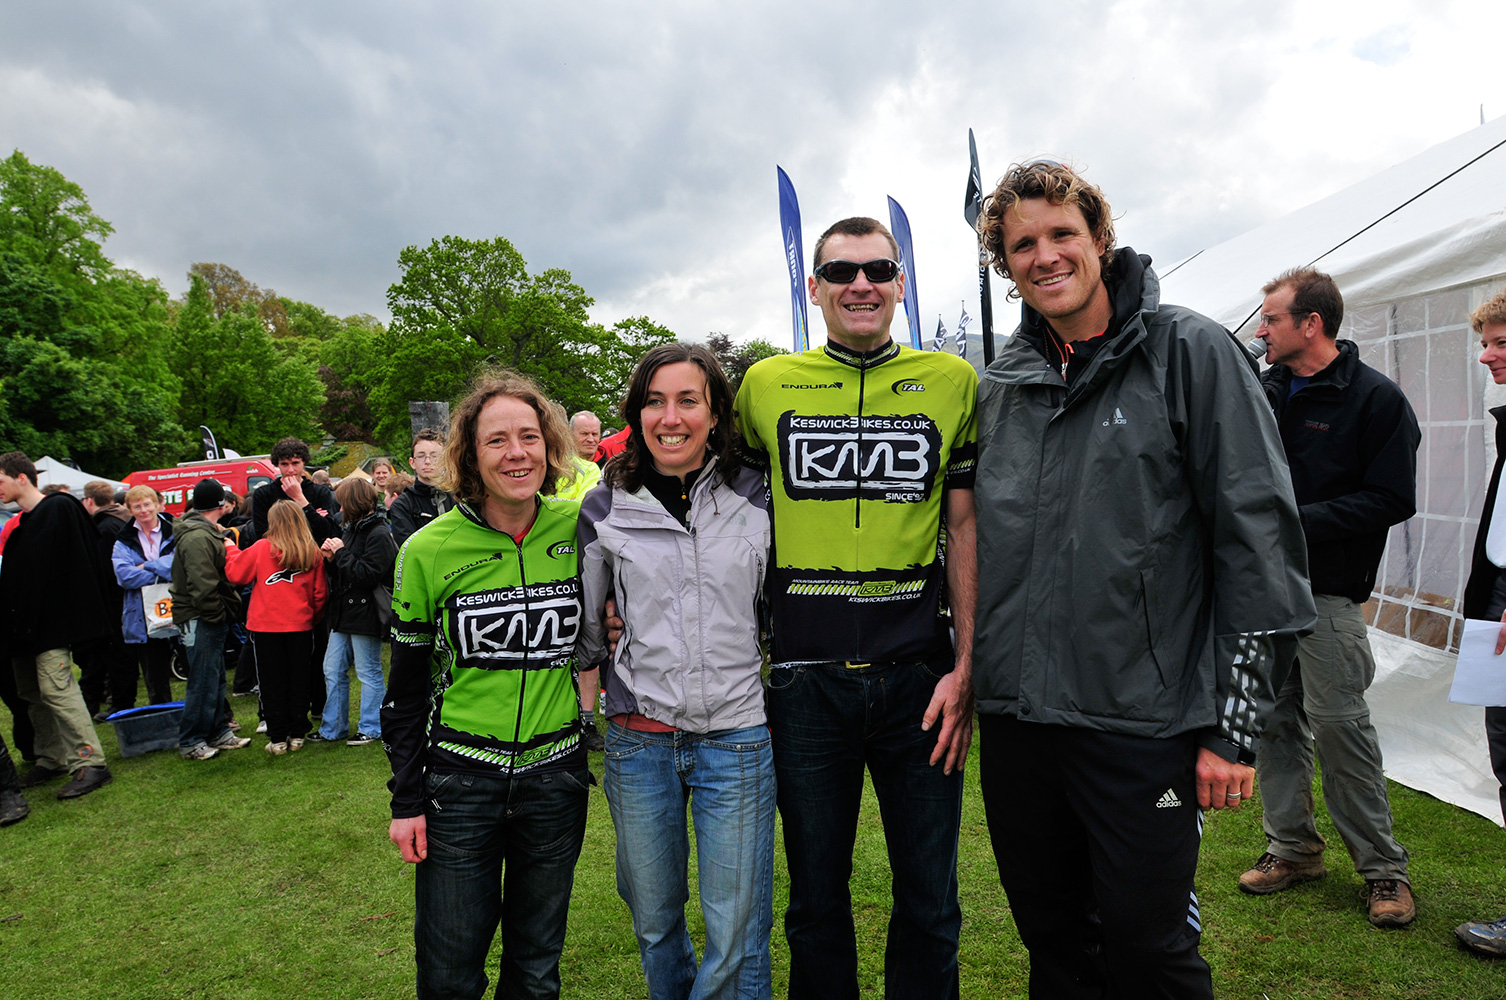 Team Chez collecting their medals for winning the relay race from international sports superstar James Cracknell